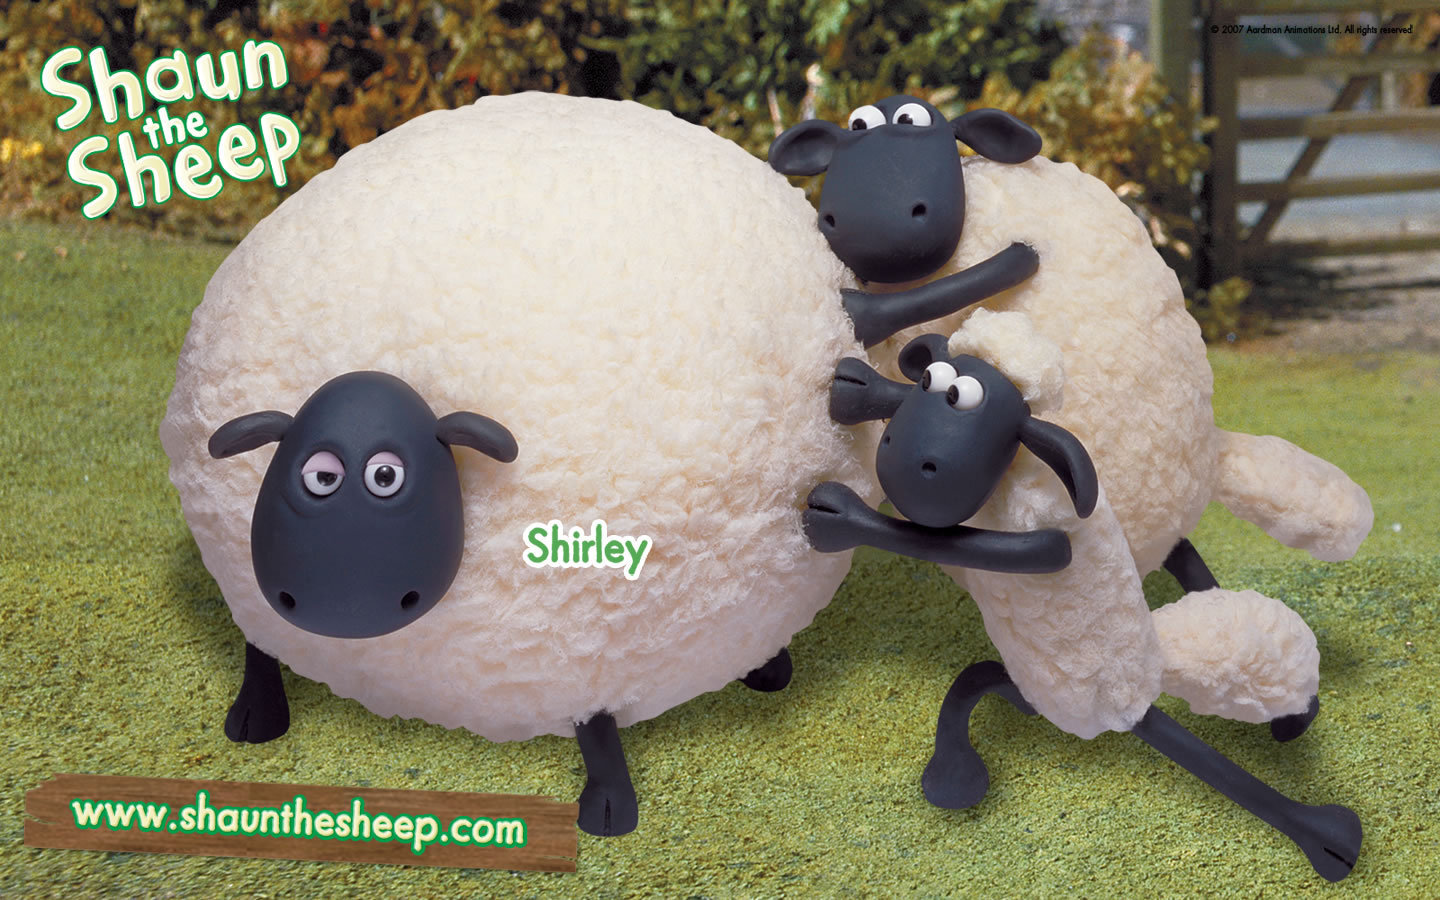 Shaun The Sheep Gambar Kartun Shaun The Sheep Hijab Tutorial New